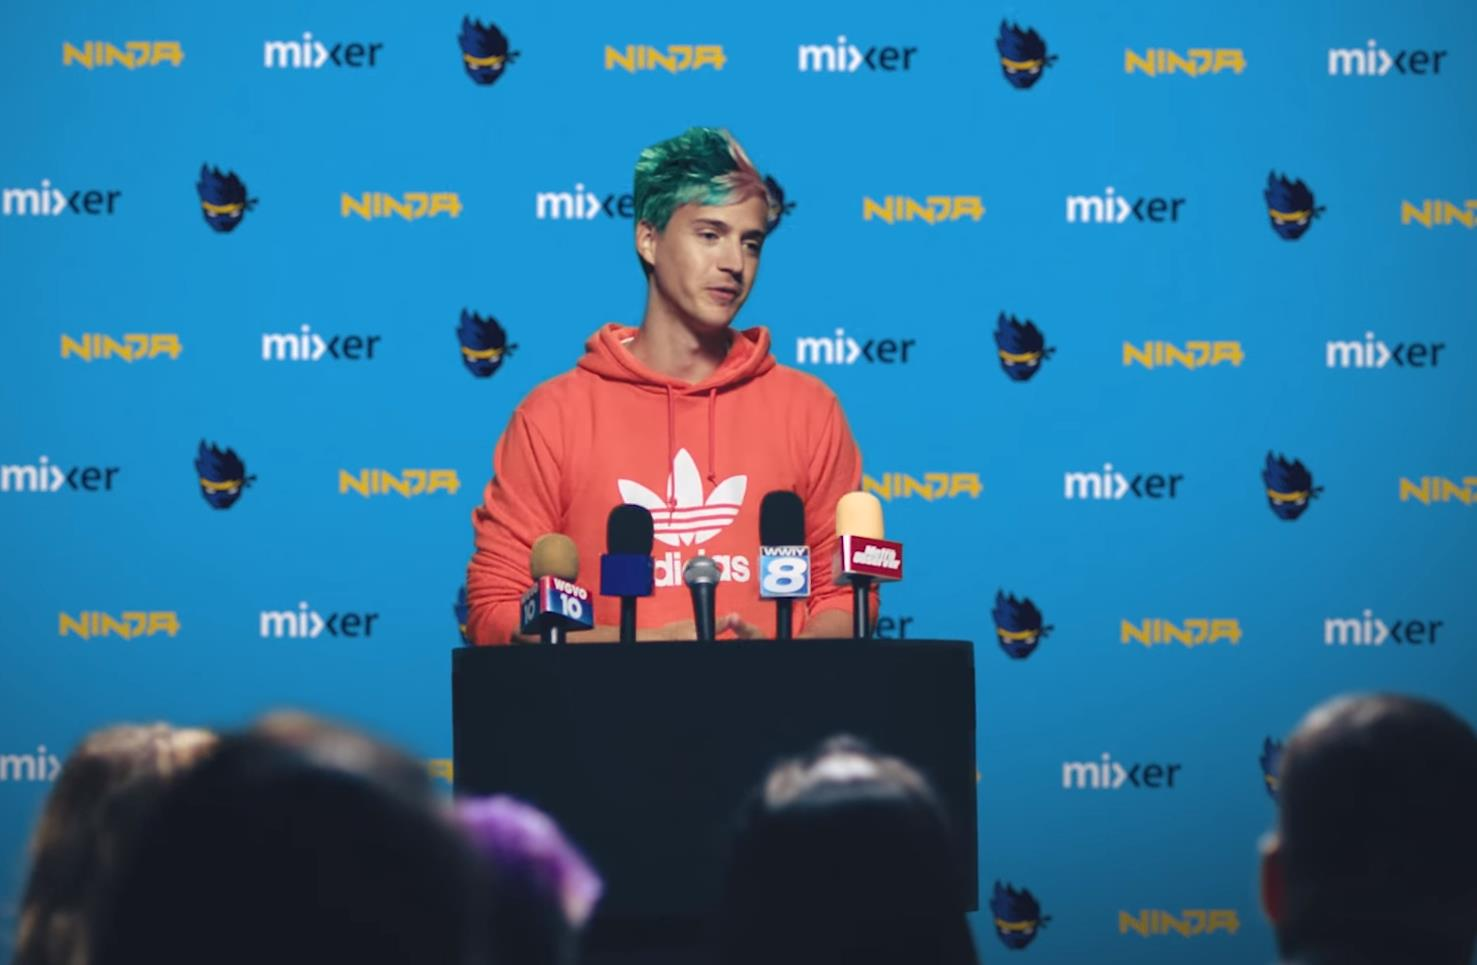 , Ninja's move to Mixer has resulted in 500k subscribers and a surge in app downloads